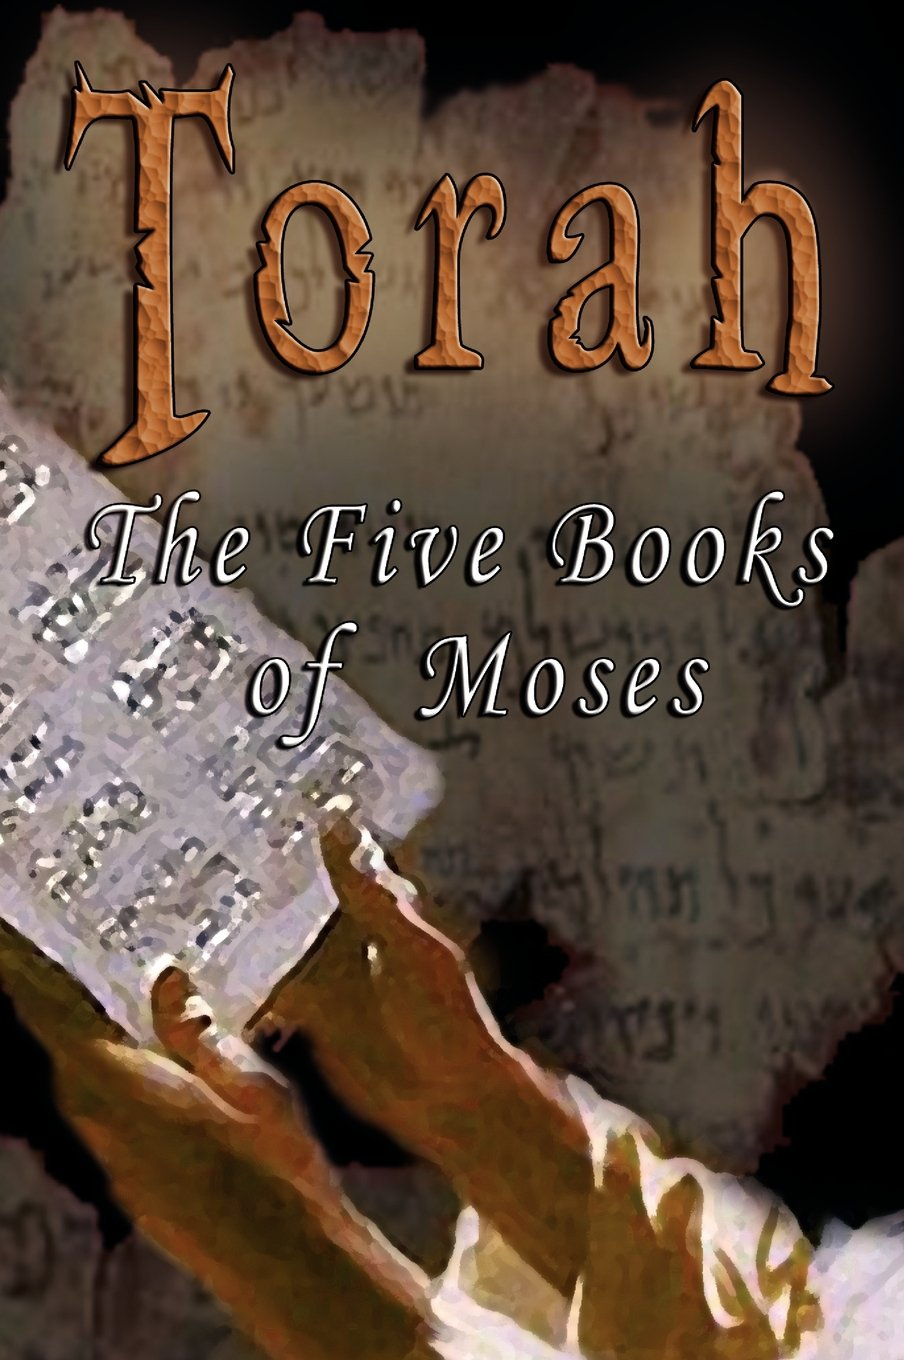 Download Torah: The Five Books of Moses - The Parallel Bible: Hebrew / English (Hebrew Edition) (Hebrew and English Edition) ebook